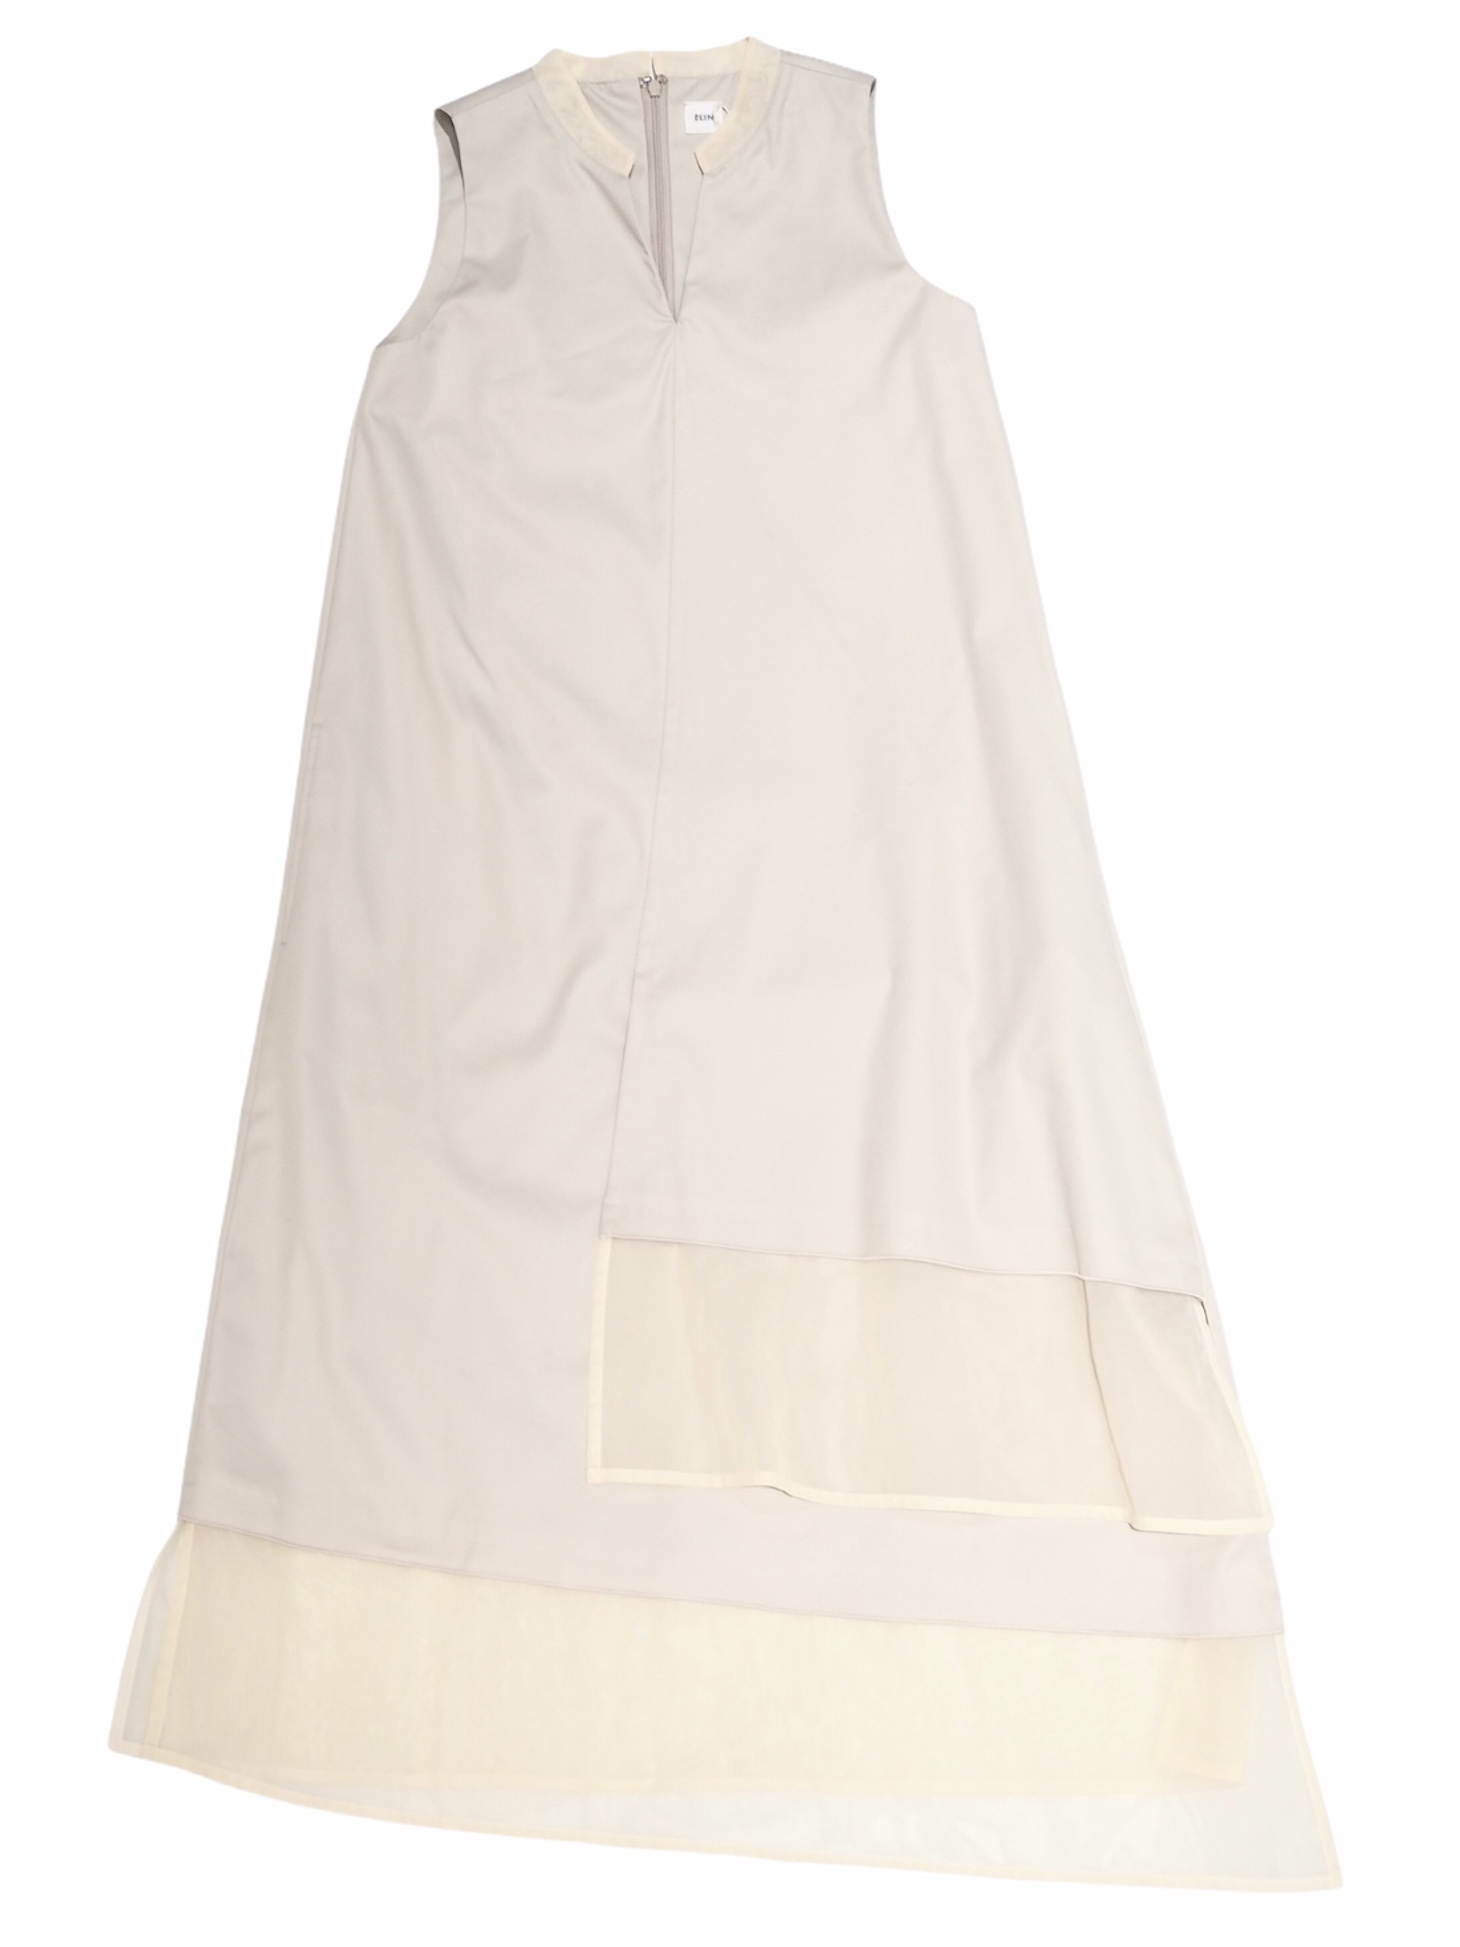 【ELIN】GABA/ORGANZA COMBI DRESS